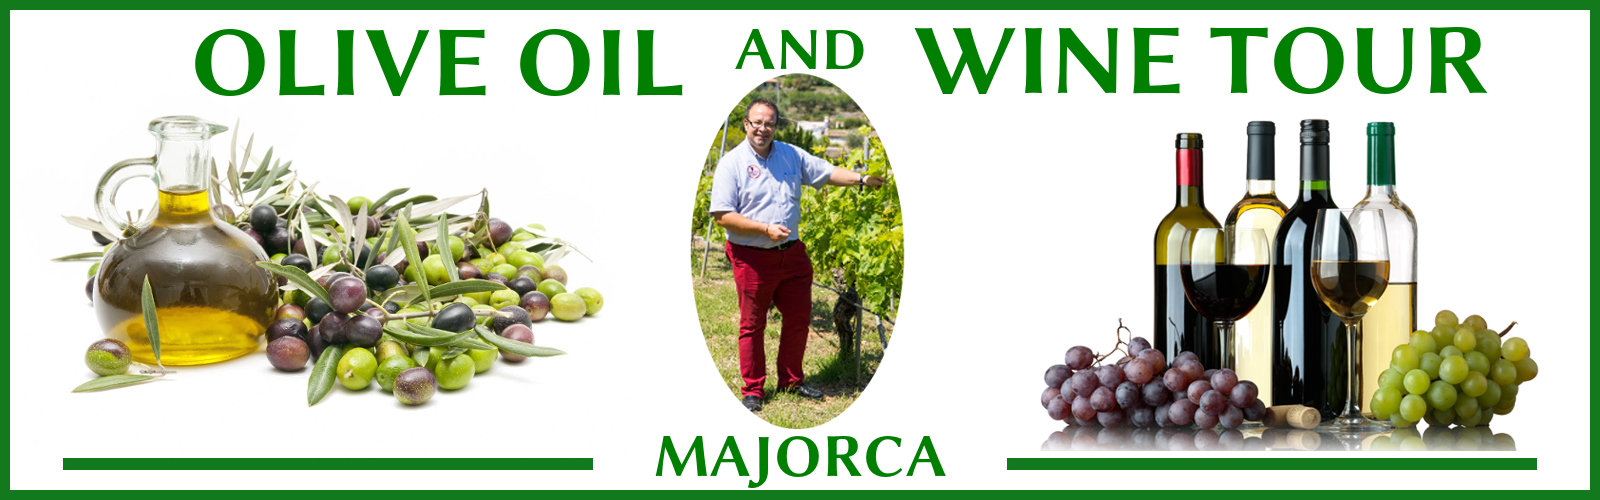 Olive Oil and Wine tour Majorca